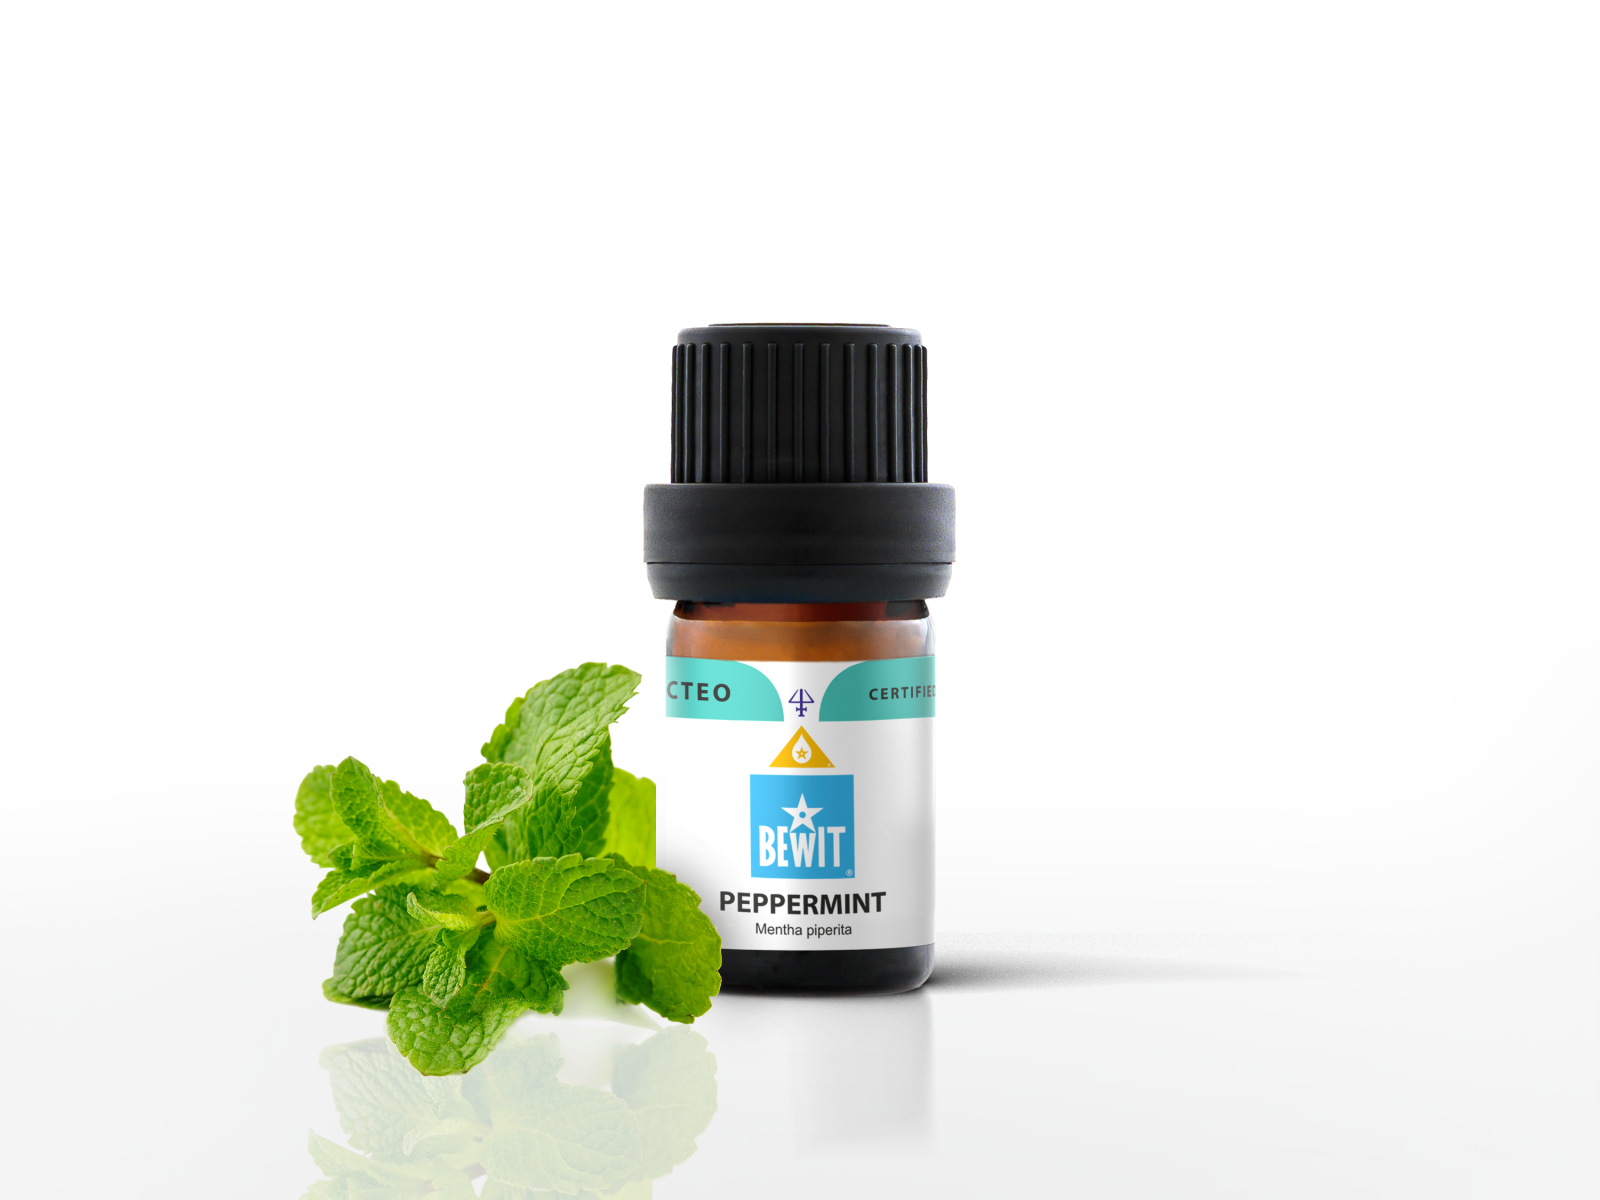 Peppermint - 100% pure essential oil, 15 ml - 2